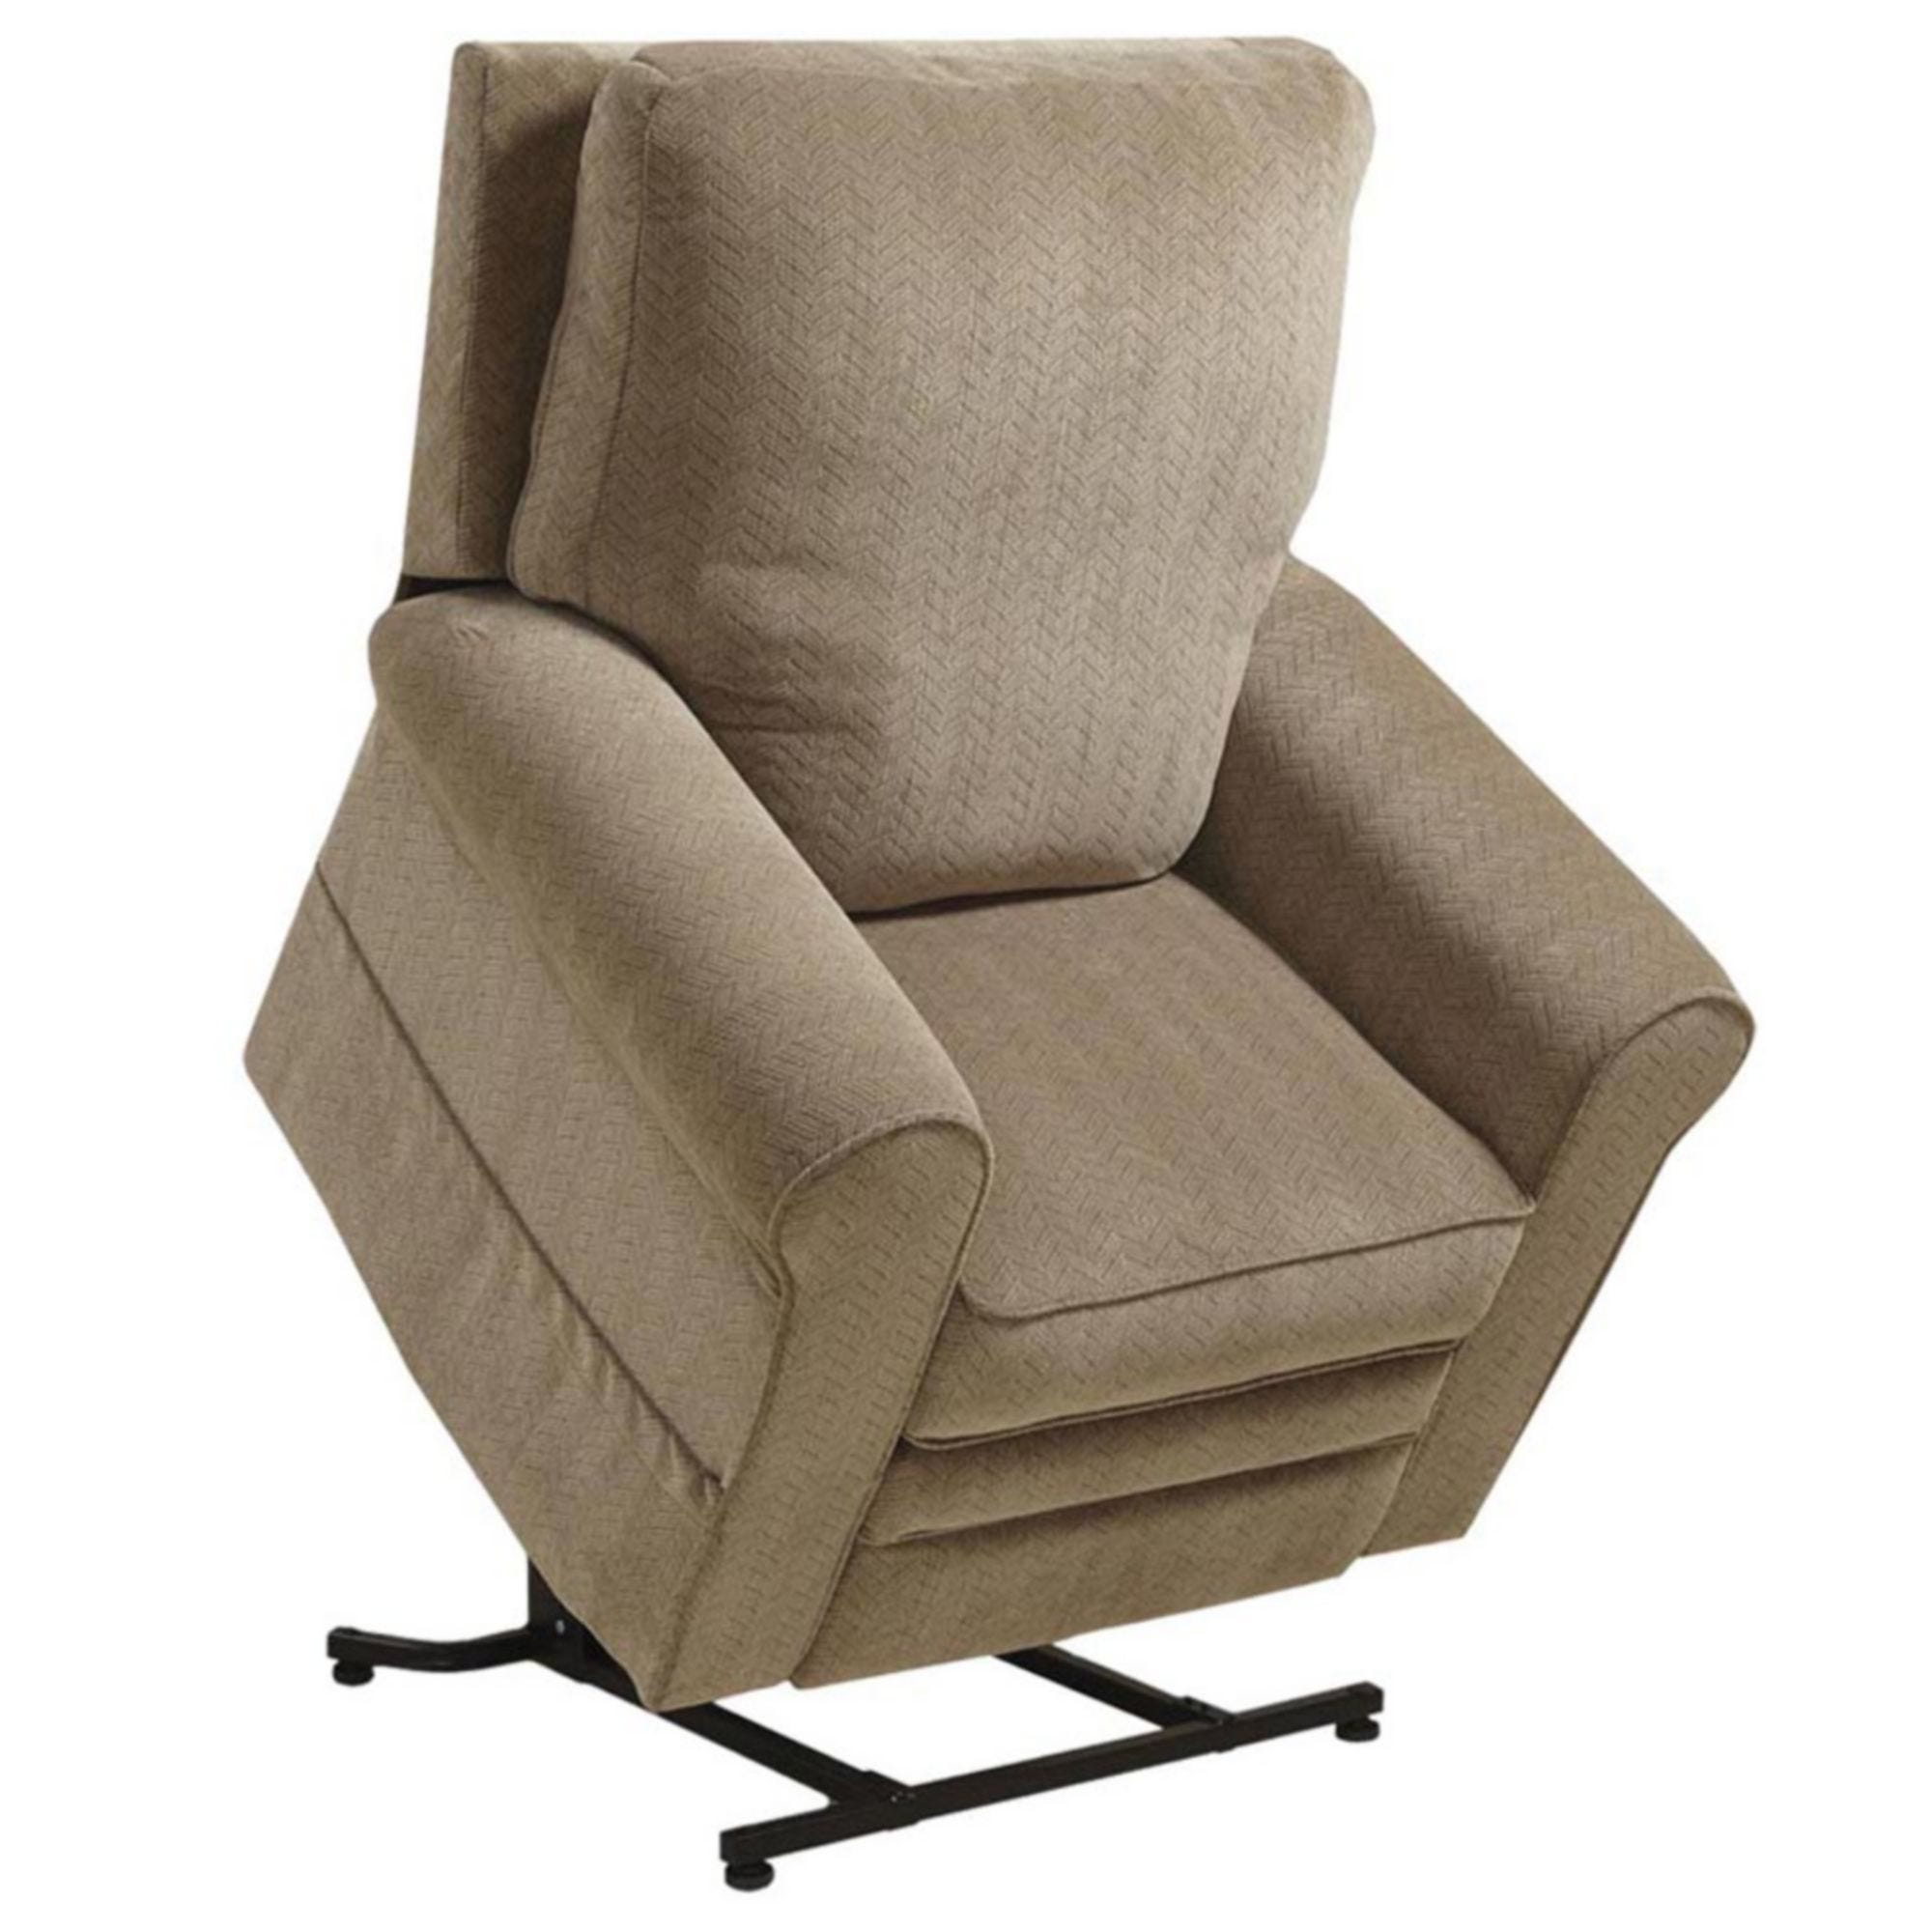 Catnapper Patriot Power Lift Recliner Reviews Amazon Celery. Power Lift Chair Recliner Us Mattress. Wiring. Catnapper Lift Chair Wiring Diagram At Scoala.co